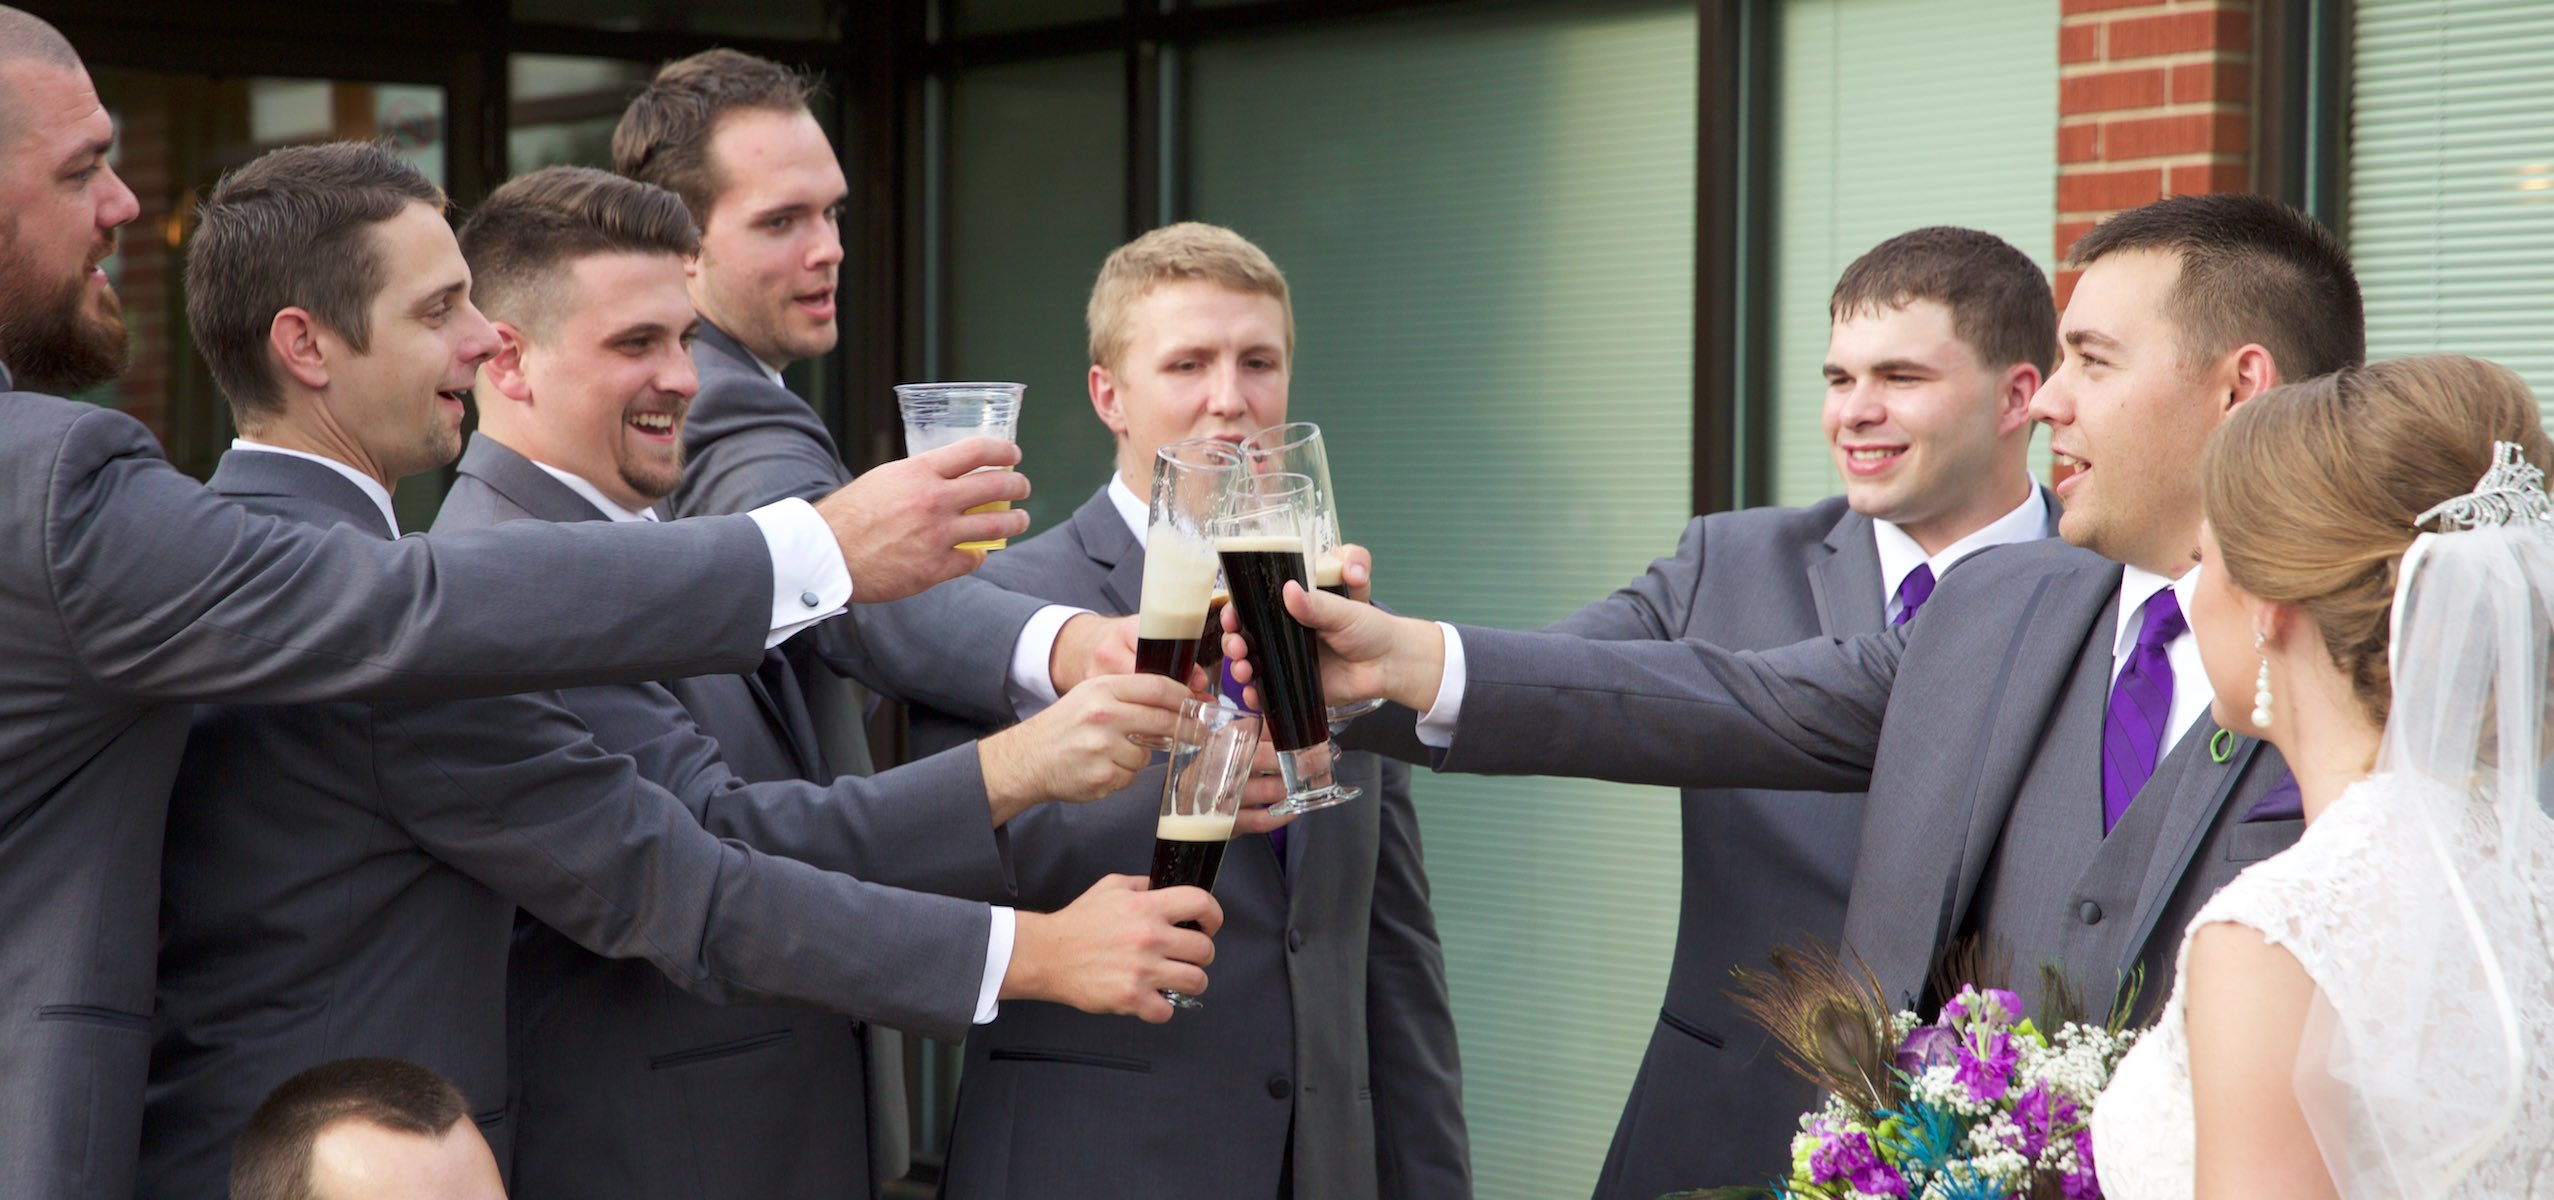 Groomsmen toast as Amanda & Nick walk back to the Jacksonville Illinois Country Club for their wedding reception. Wedding photography by Steve & Tiffany Warmowski.